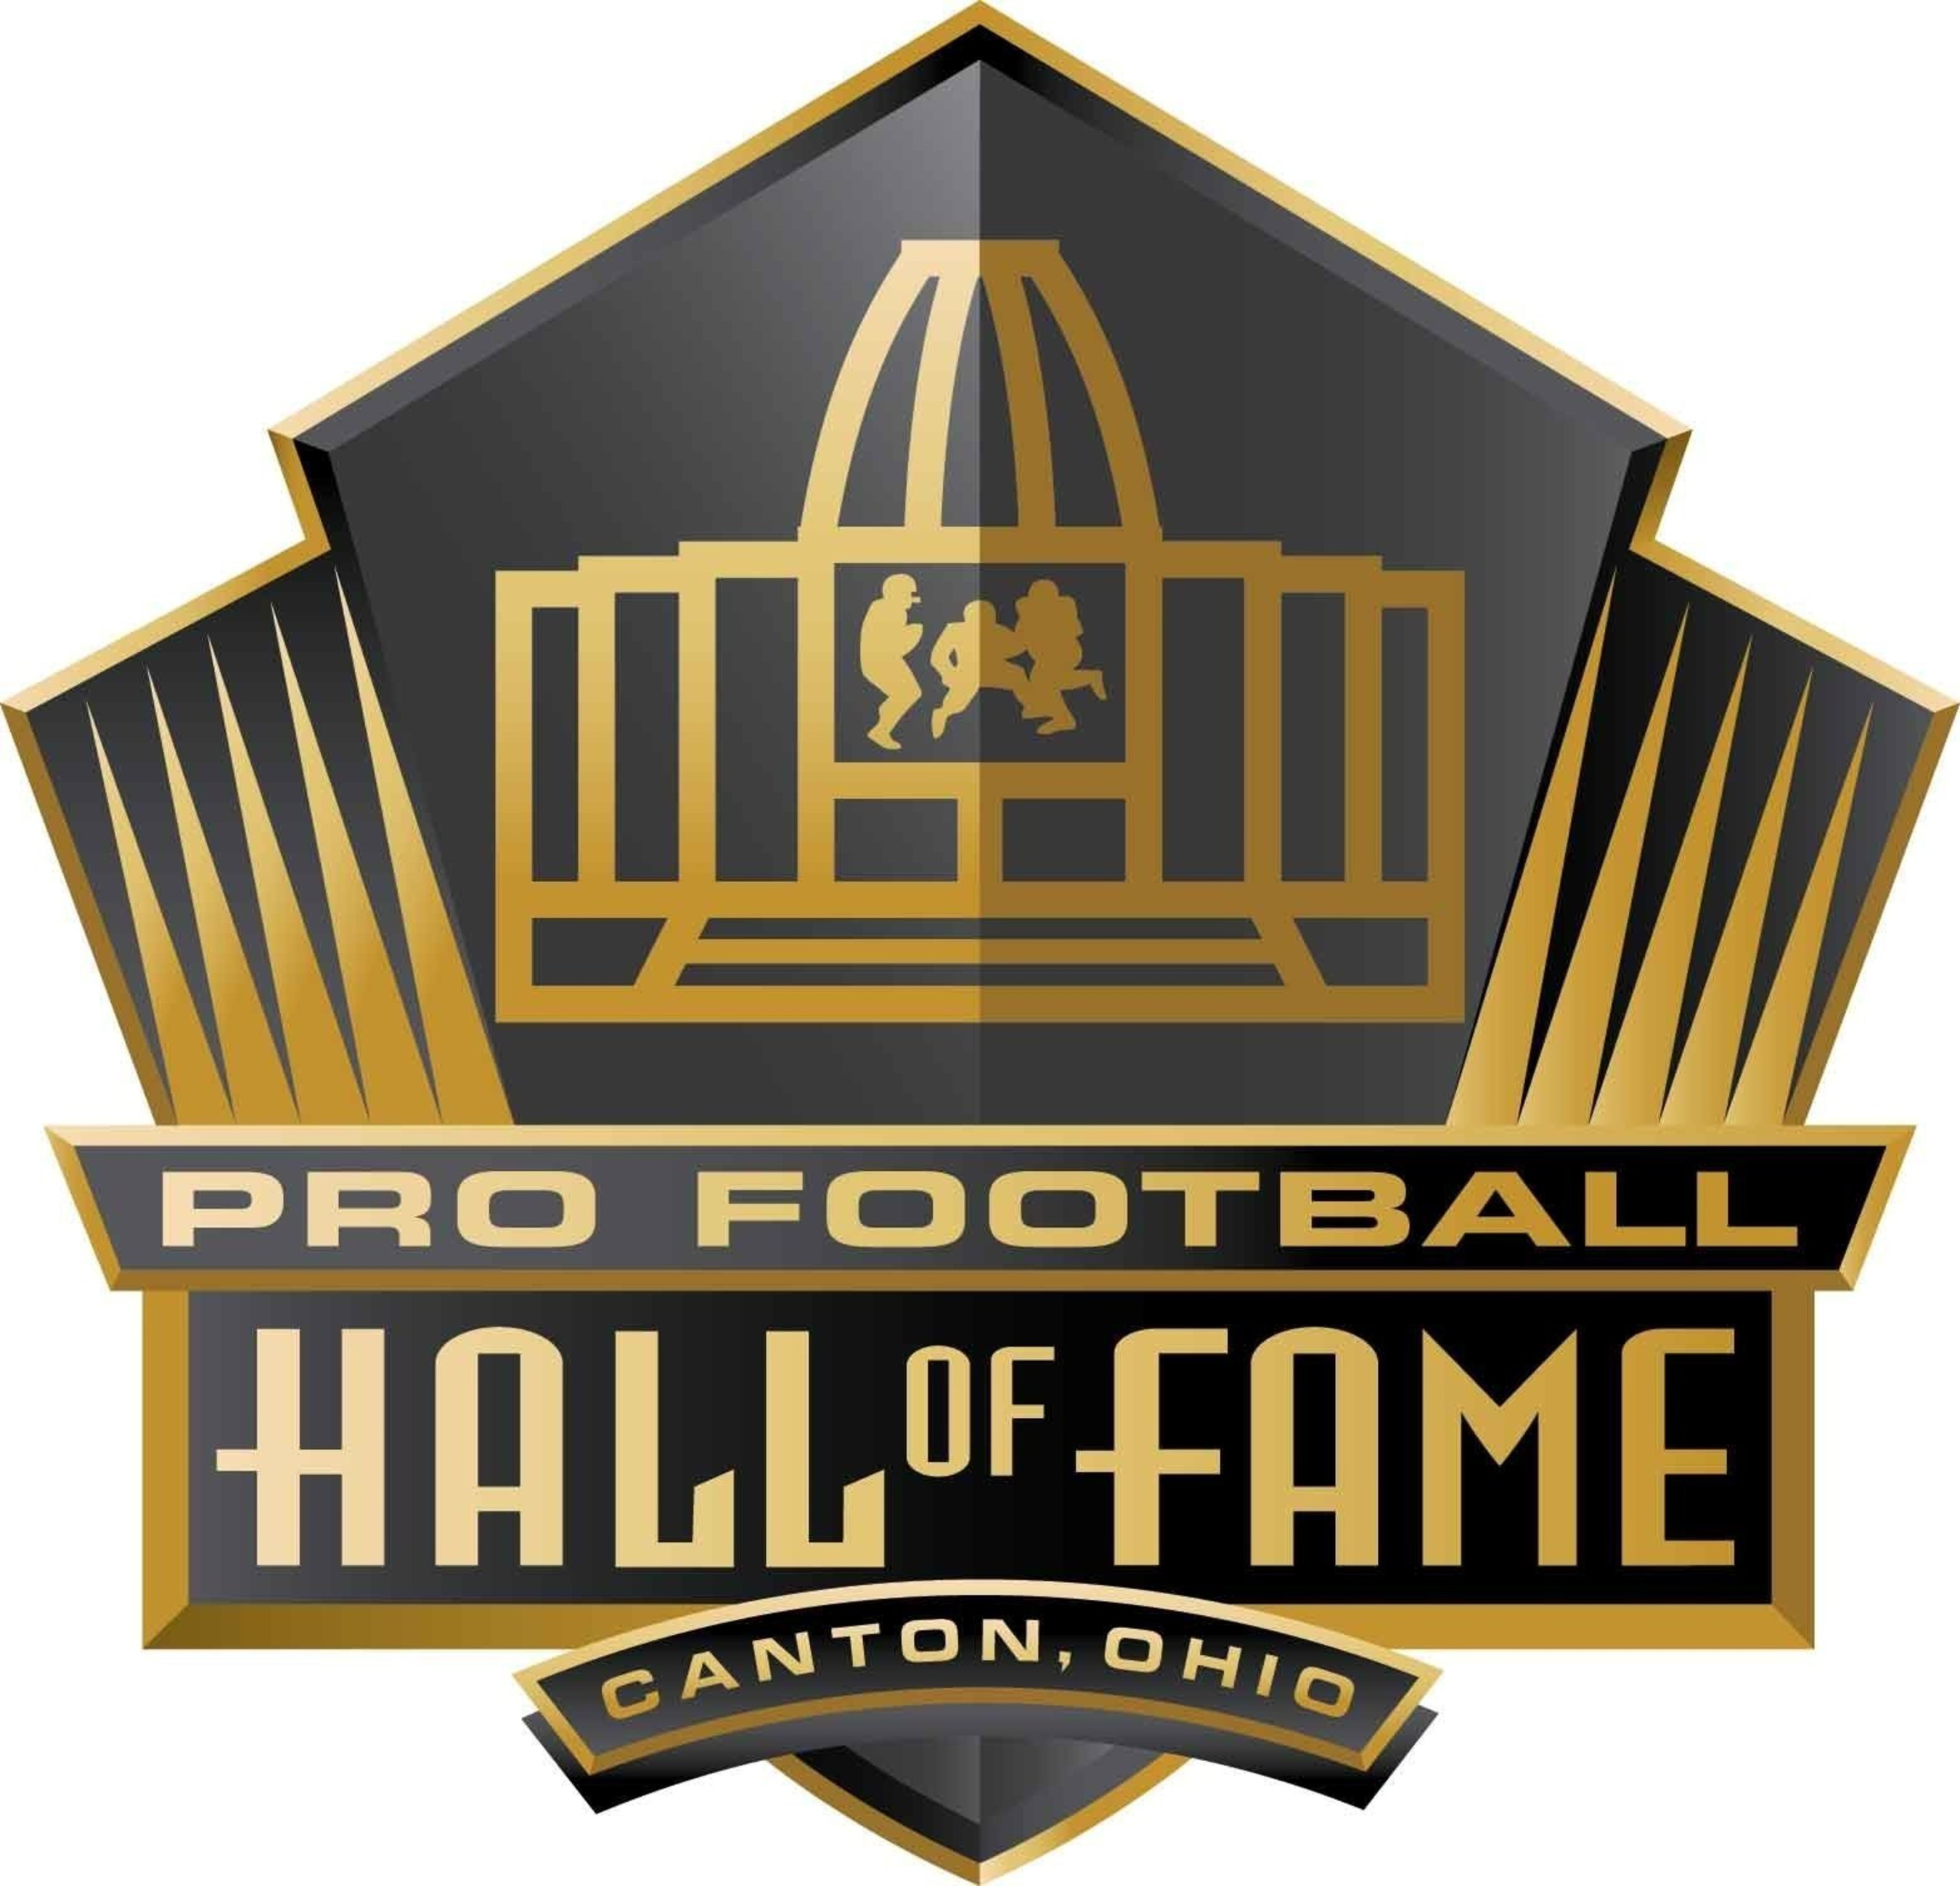 SiriusXM and Pro Football Hall of Fame Team Up for New Show.